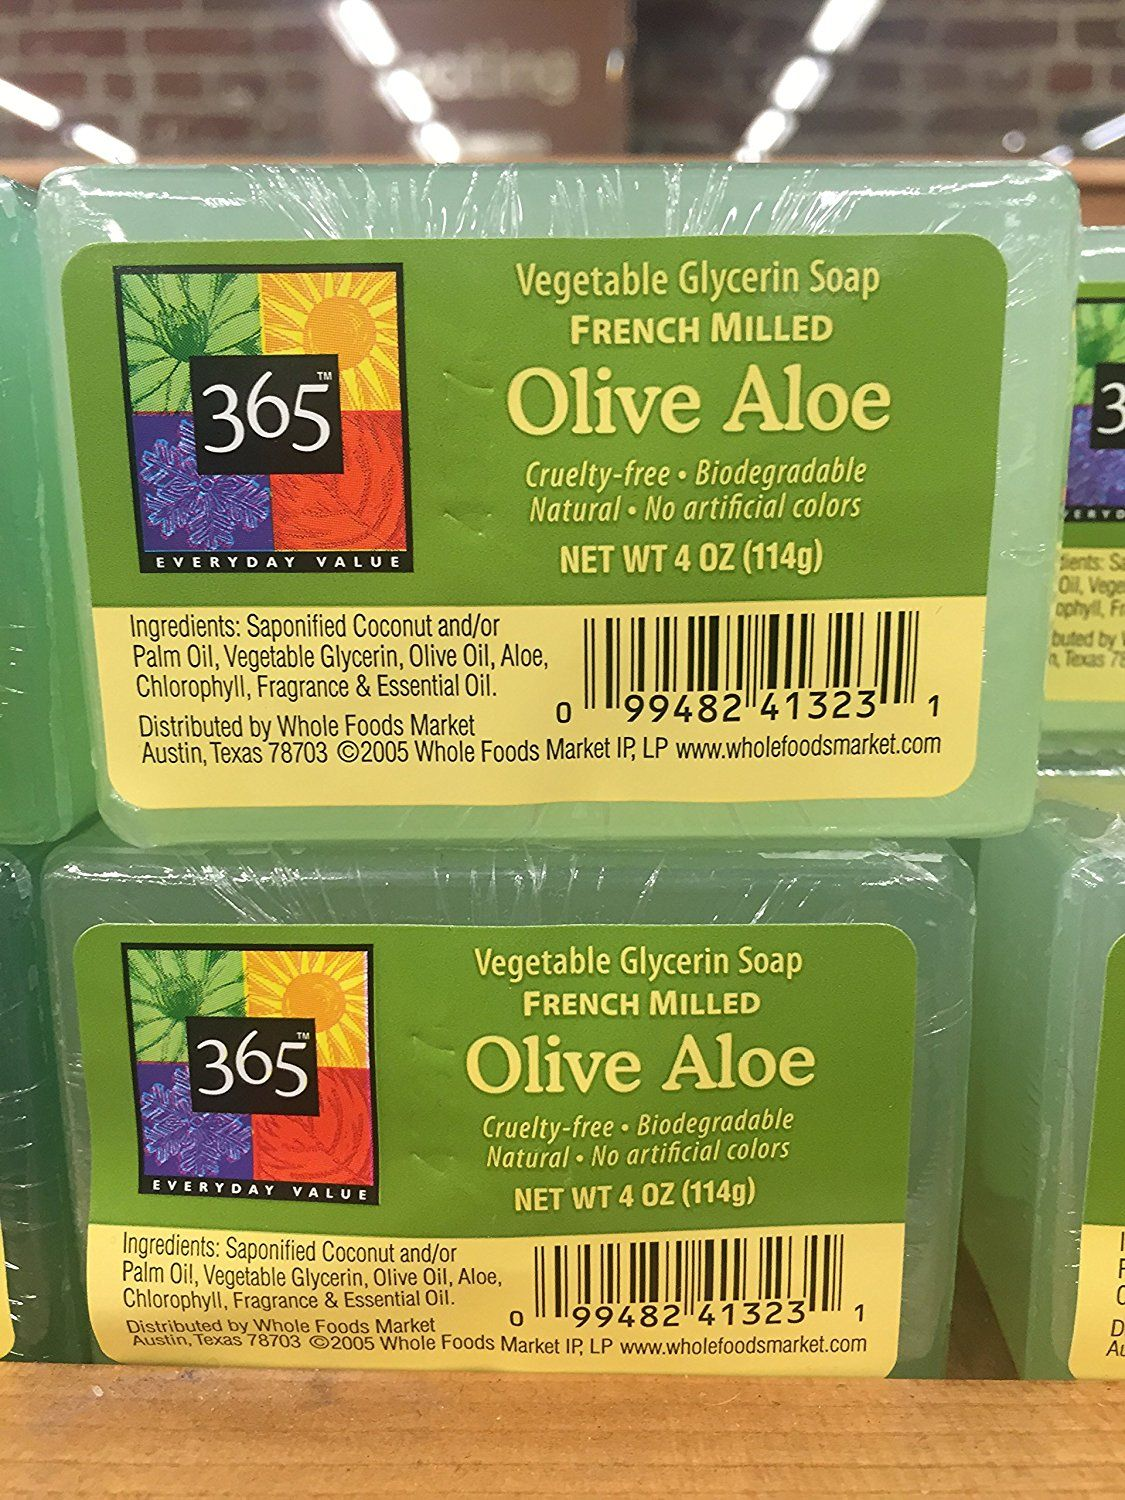 365 Everyday Value Vegetable Glycerin Soup French Milled Olive